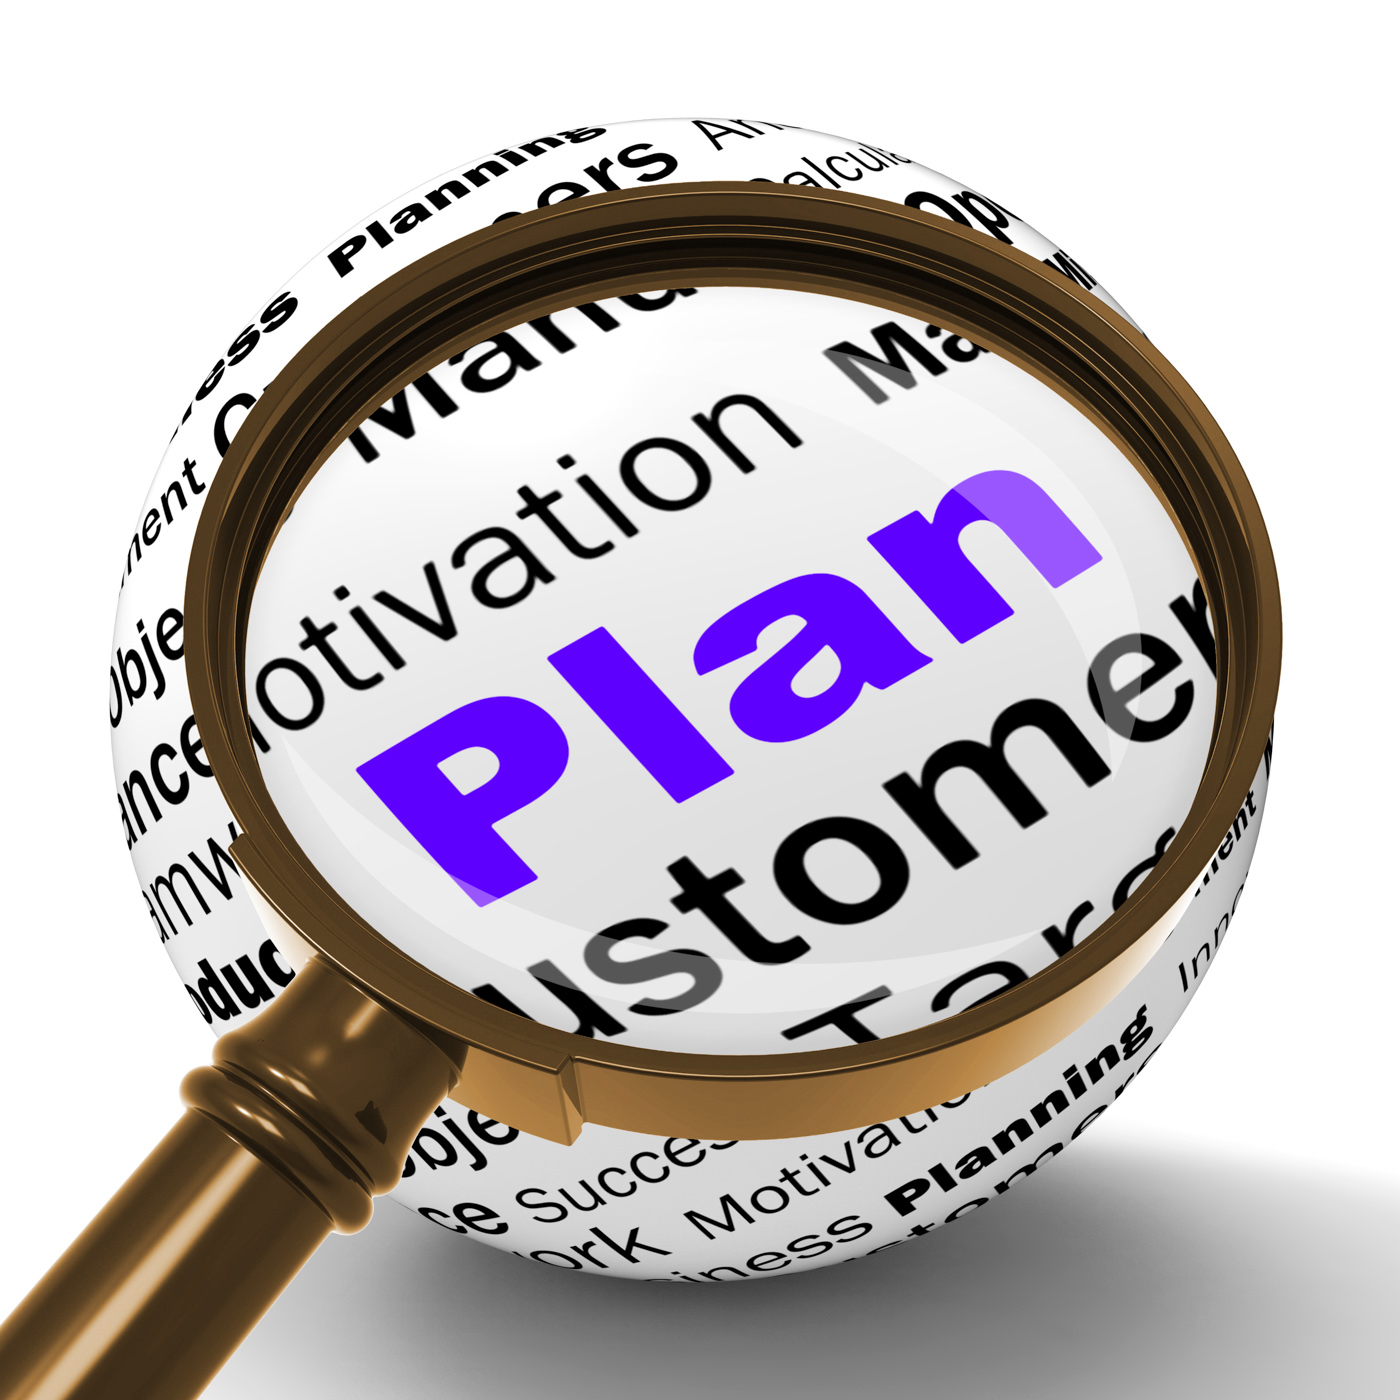 Plan Magnifier Definition Means Planning Or Objective Managing, Aim, Aims, Aspirations, Aspire, HQ Photo